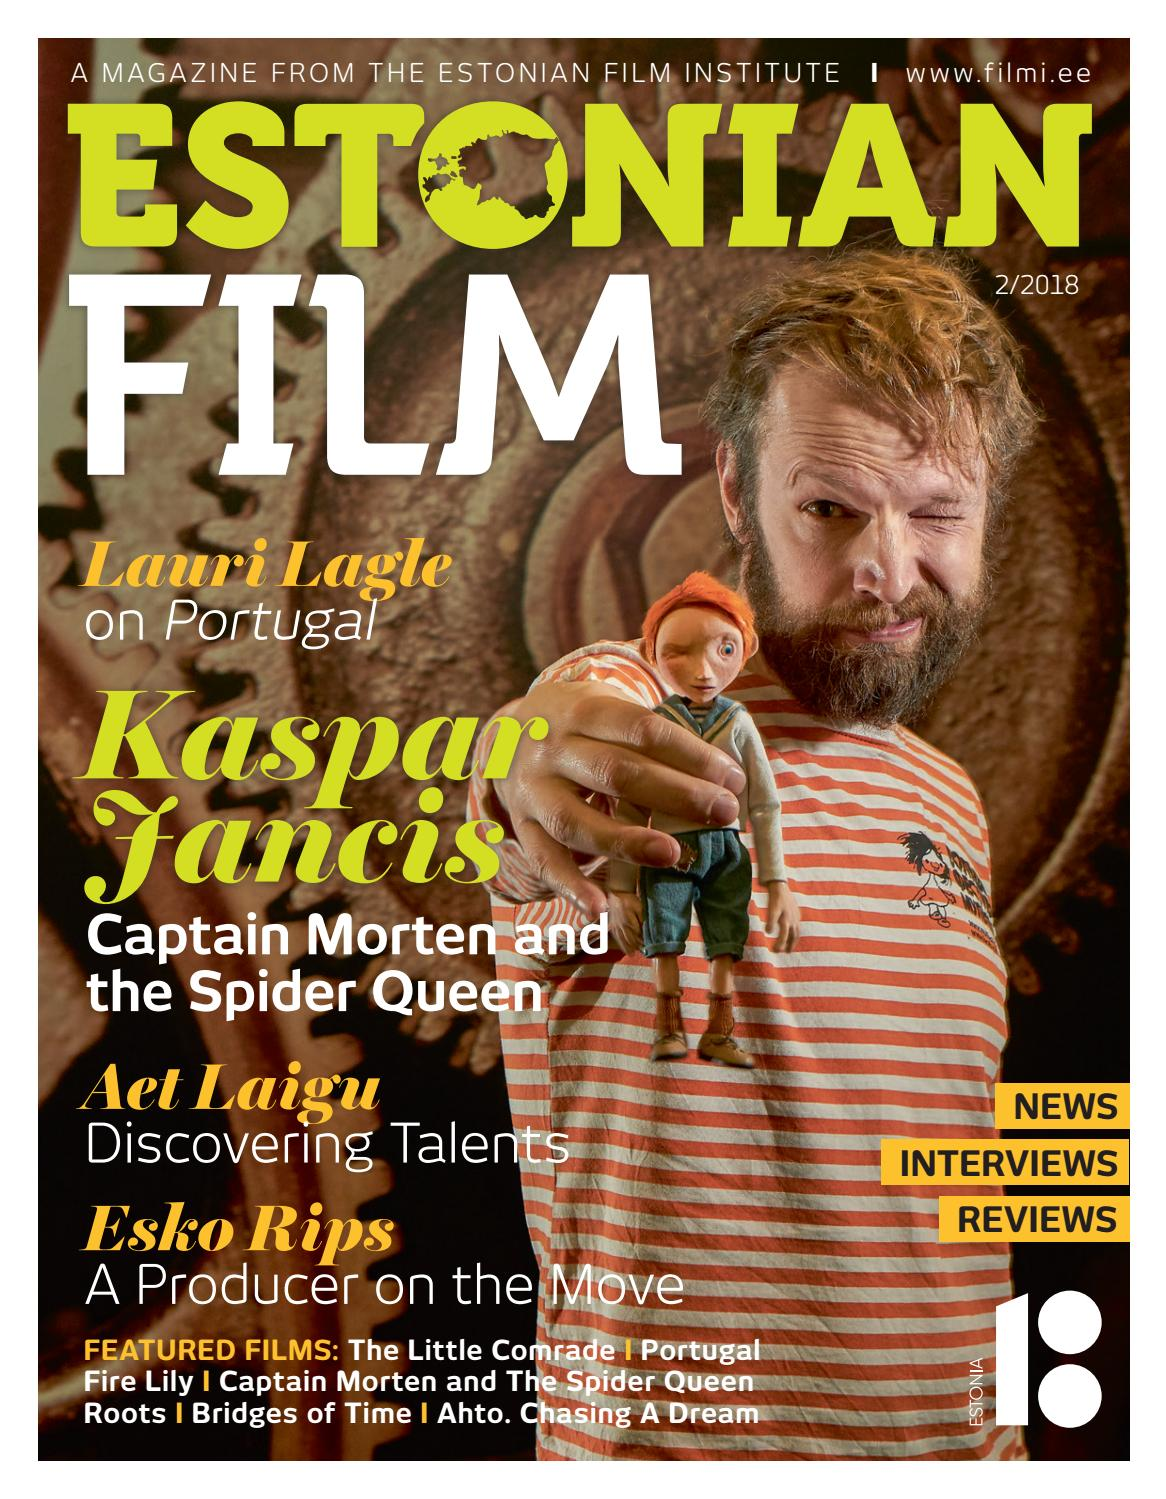 Estonian Film 2018 02 Issuu By Eesti Filmi Instituut Issuu